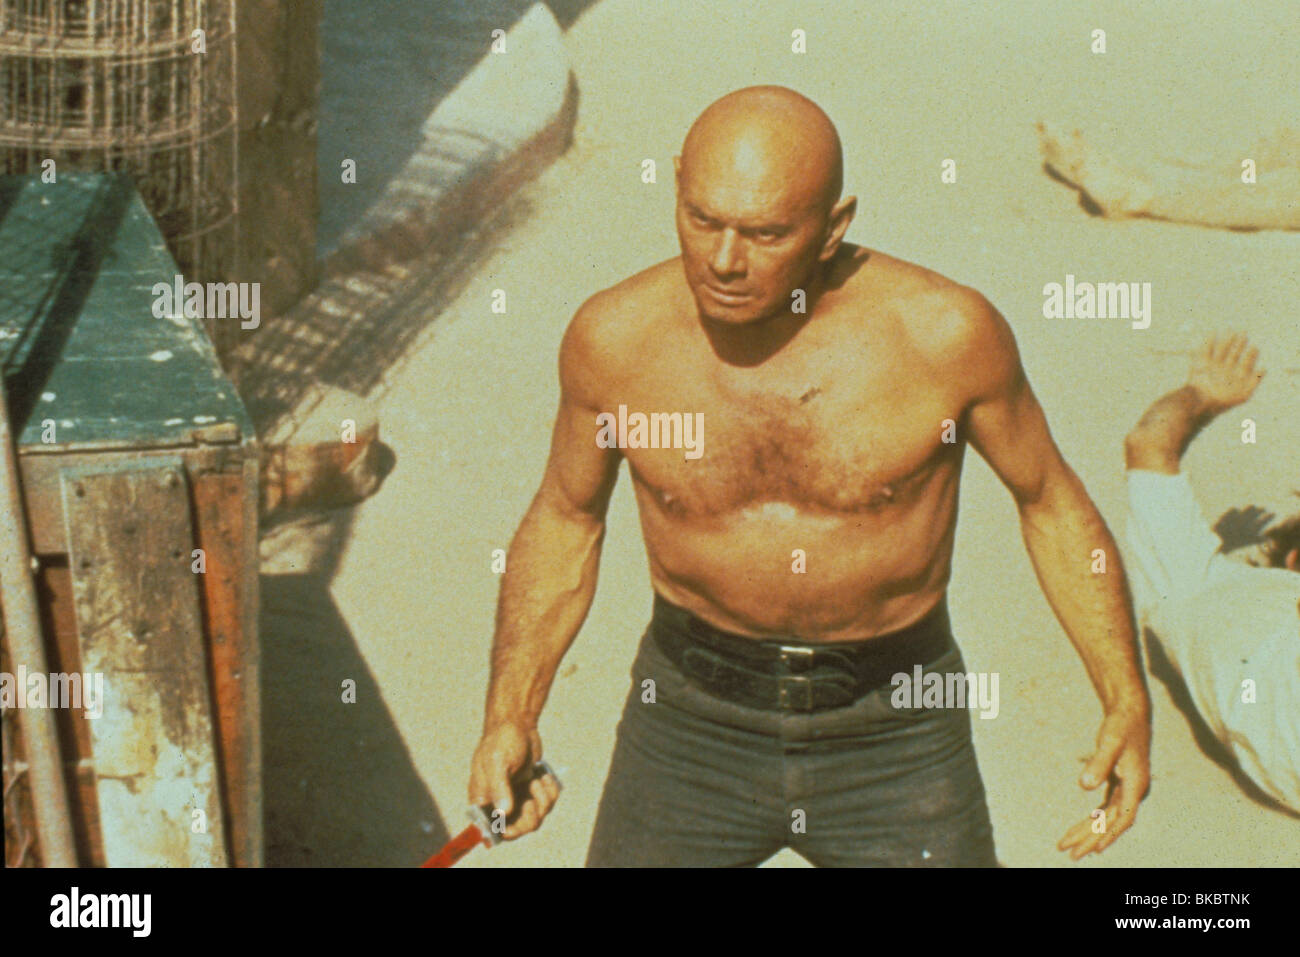 THE ULTIMATE WARRIOR (1975) YUL BRYNNER ULW 014 - Stock Image